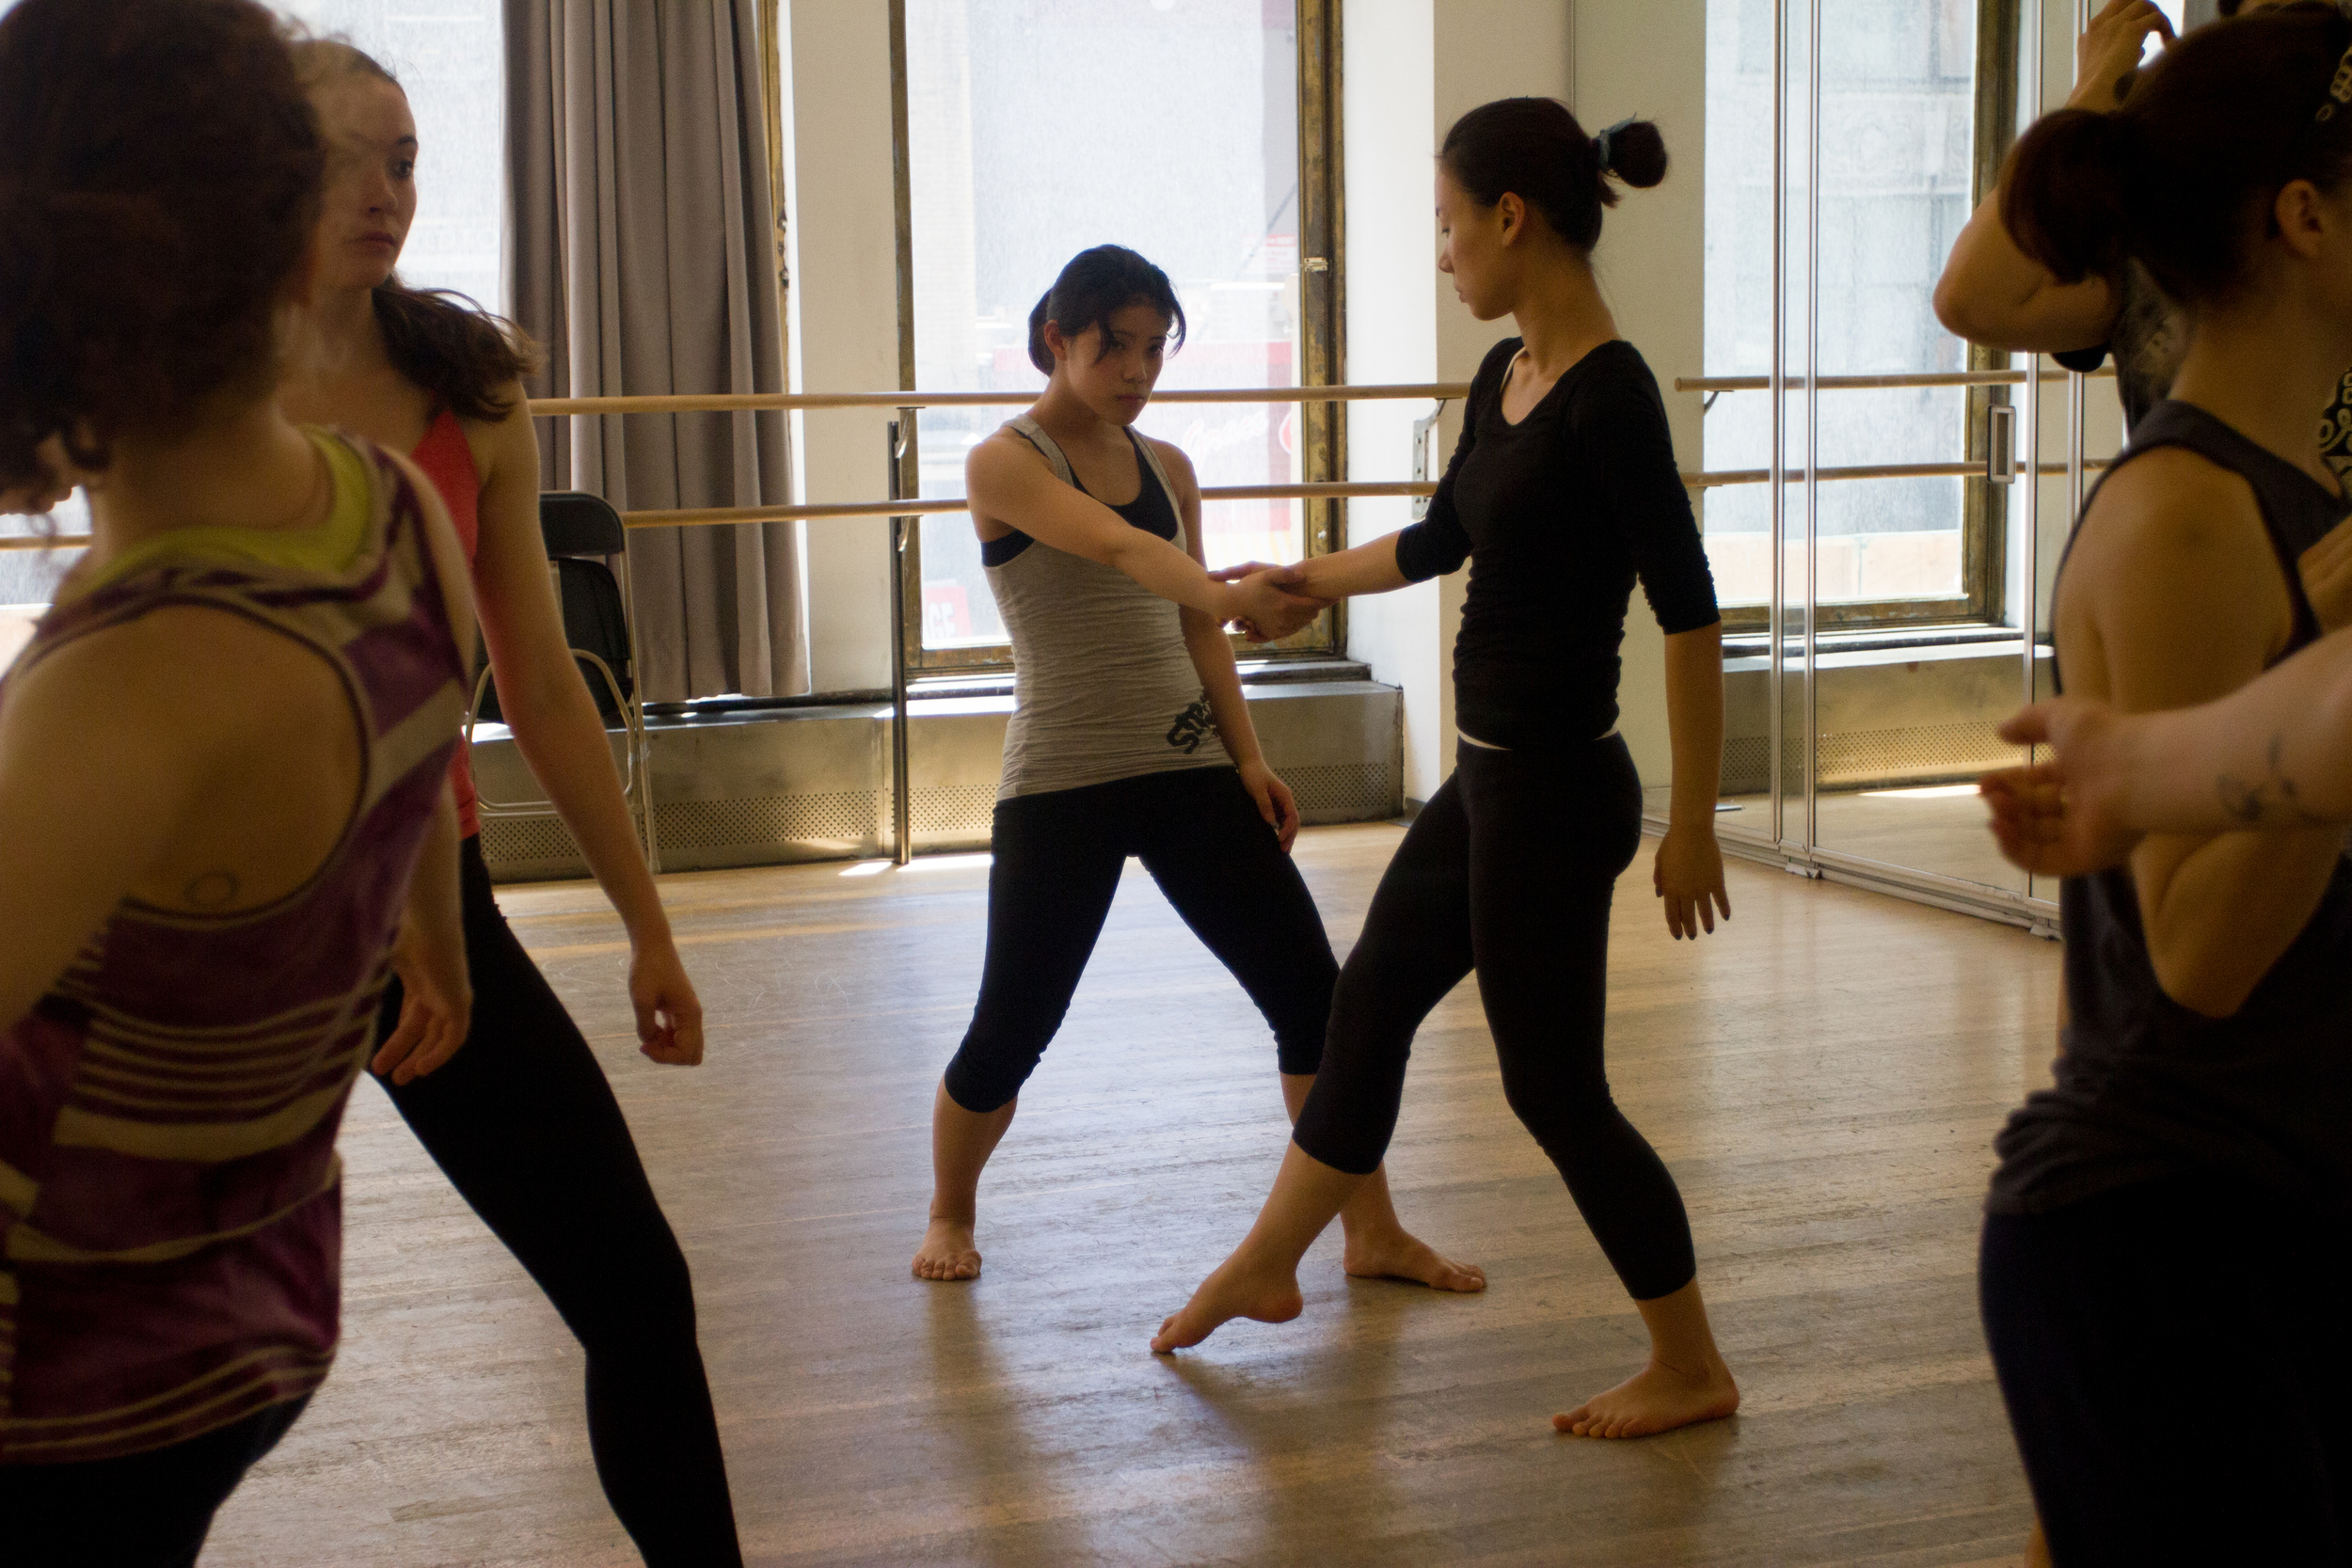 For Itohara, dance is visual storytelling without words. Sure, she said, choreography and form require firm vigilance, but when in the spotlight before a hundred pairs of eyes, her ability to connect with theaudience is what makes it art.